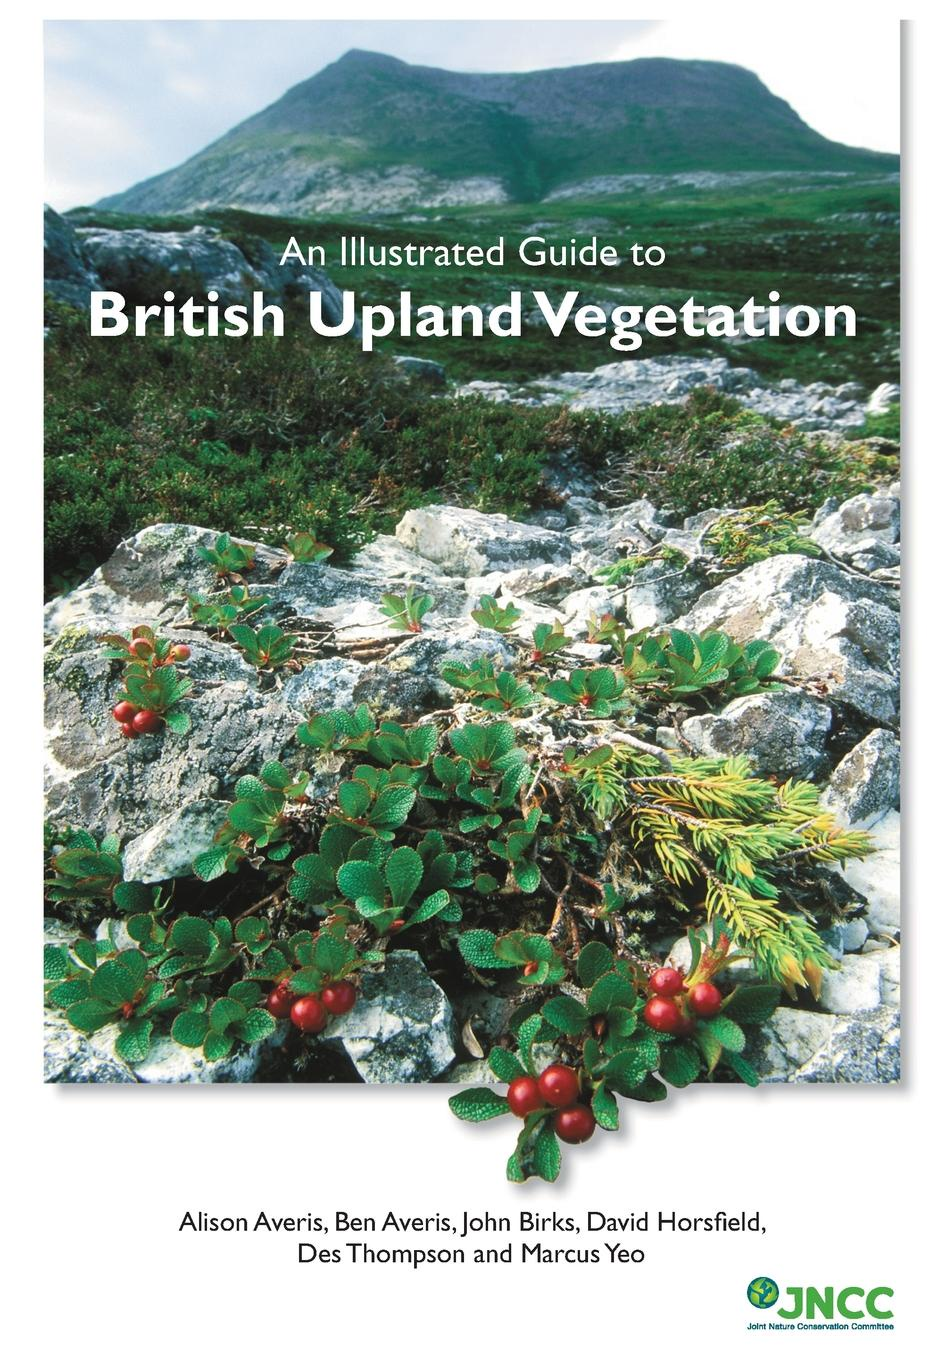 Alison Averis, Ben Averis, John Birks An Illustrated Guide to British Upland Vegetation vegetation hong 120